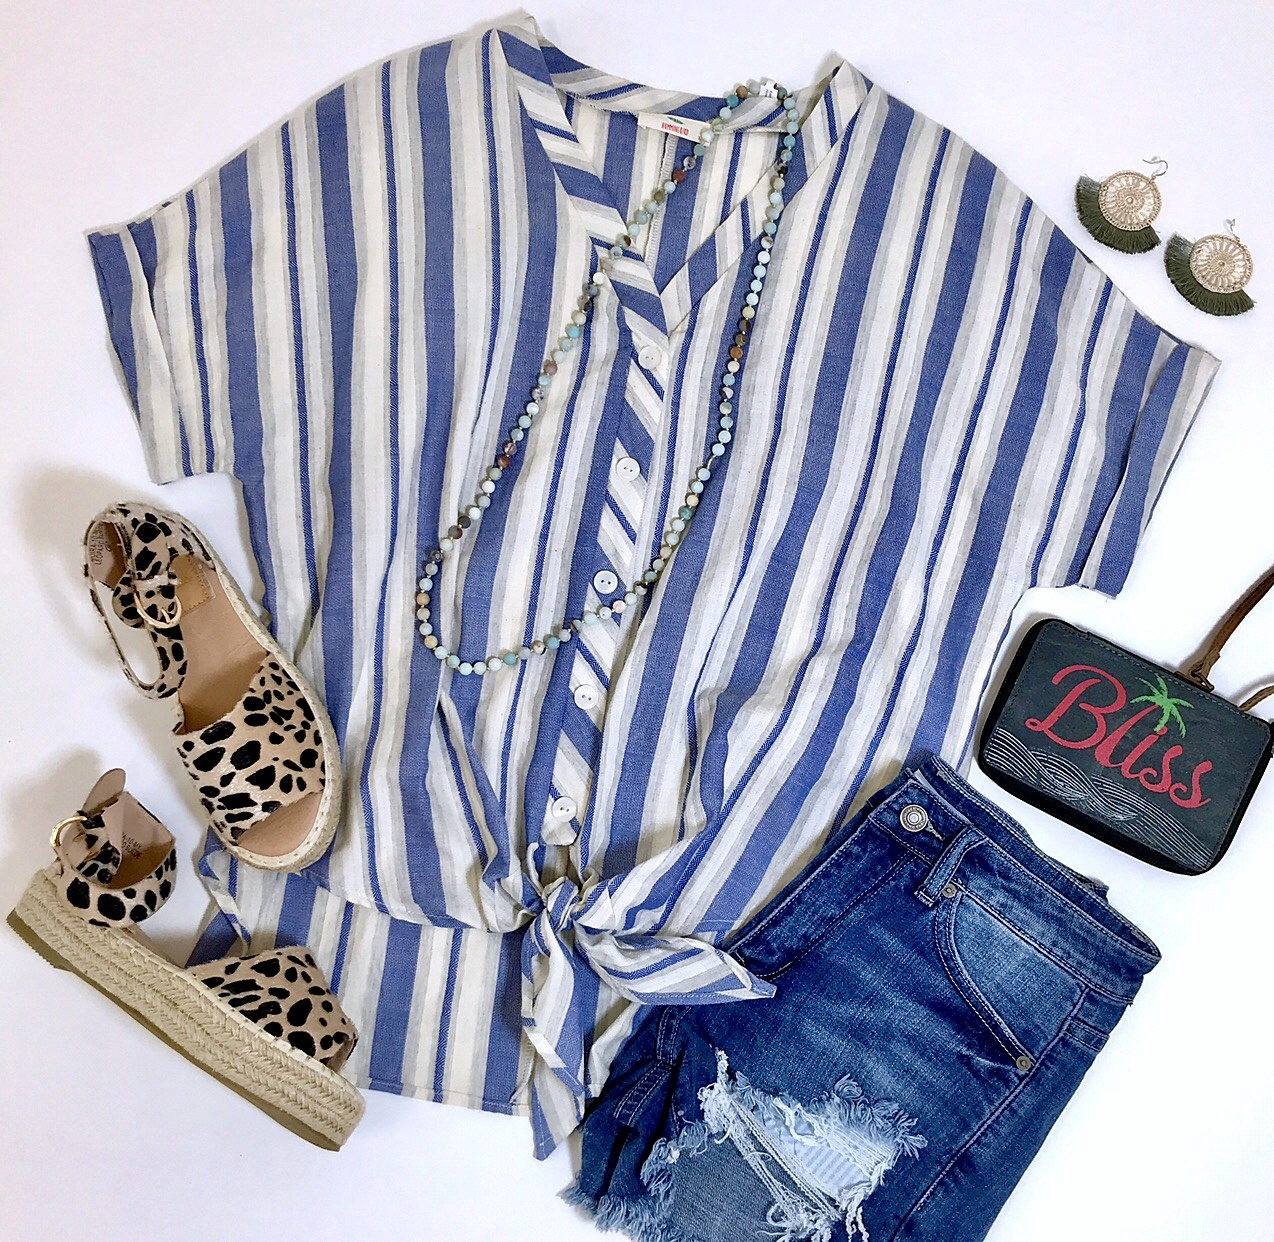 Lillie's Navy / Cream Striped Button Up Knot Top